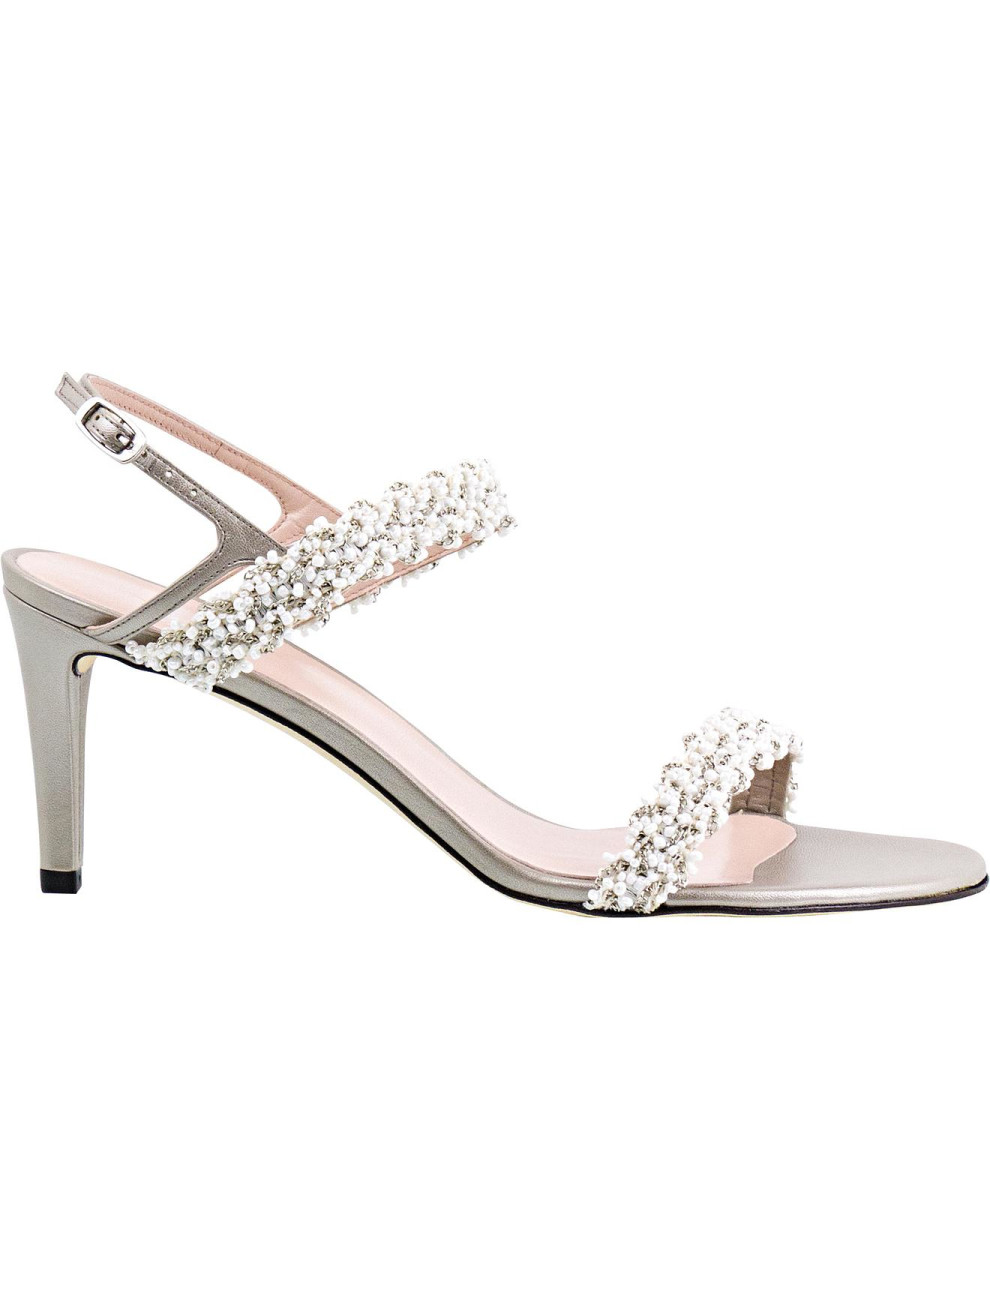 Bridal Shoes Melbourne Low Heel 2018 Flats Wedges Pics In Stan Mid Ivory Photos